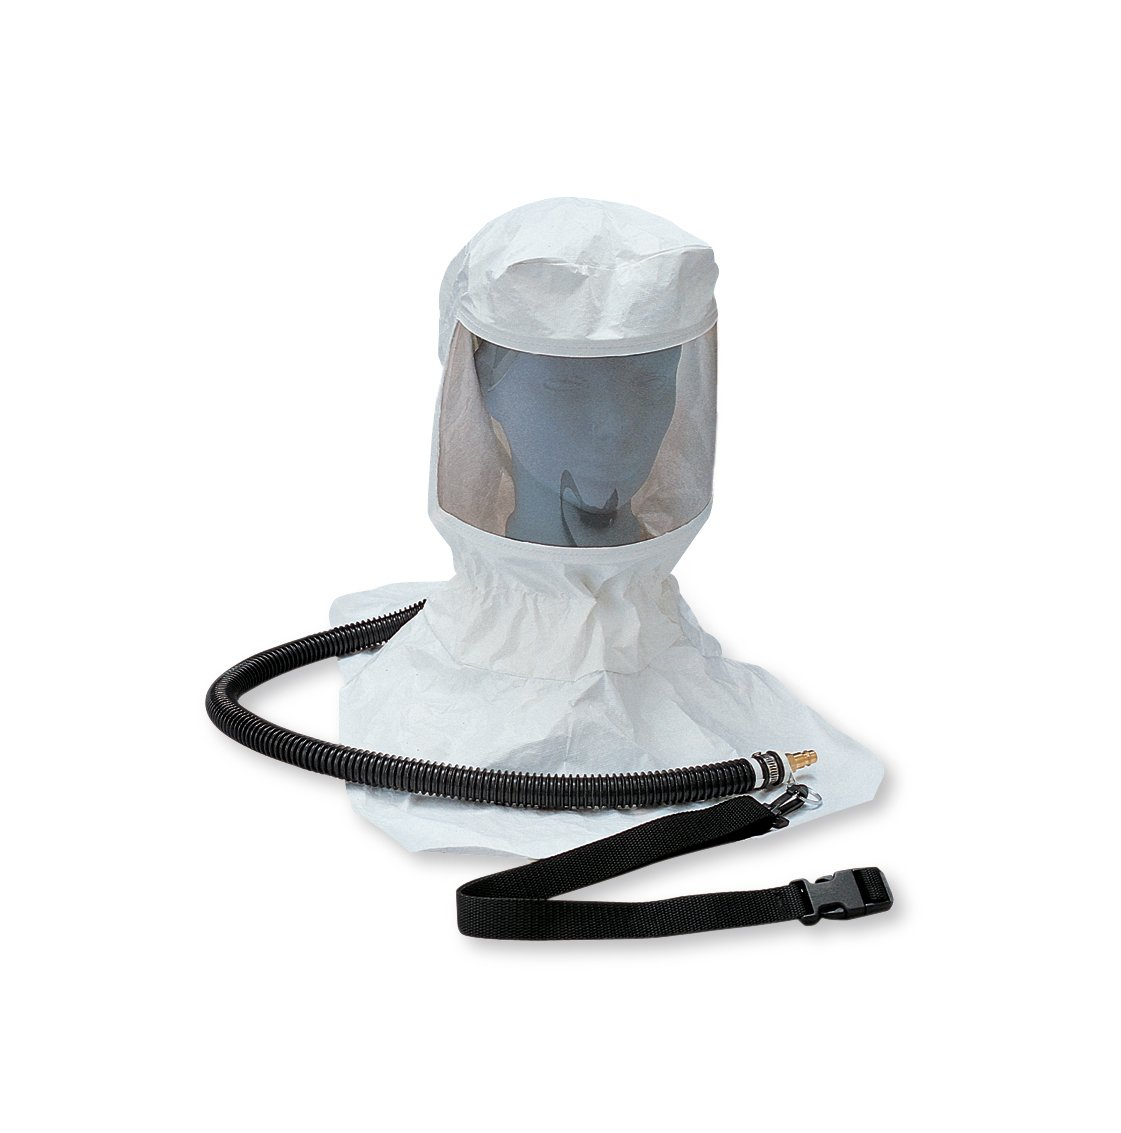 Allegro Industries 9910 Tyvek Hood CF SAR Assembly, Includes OBAC Fitting, Belt, Clip and Suspension, Standard